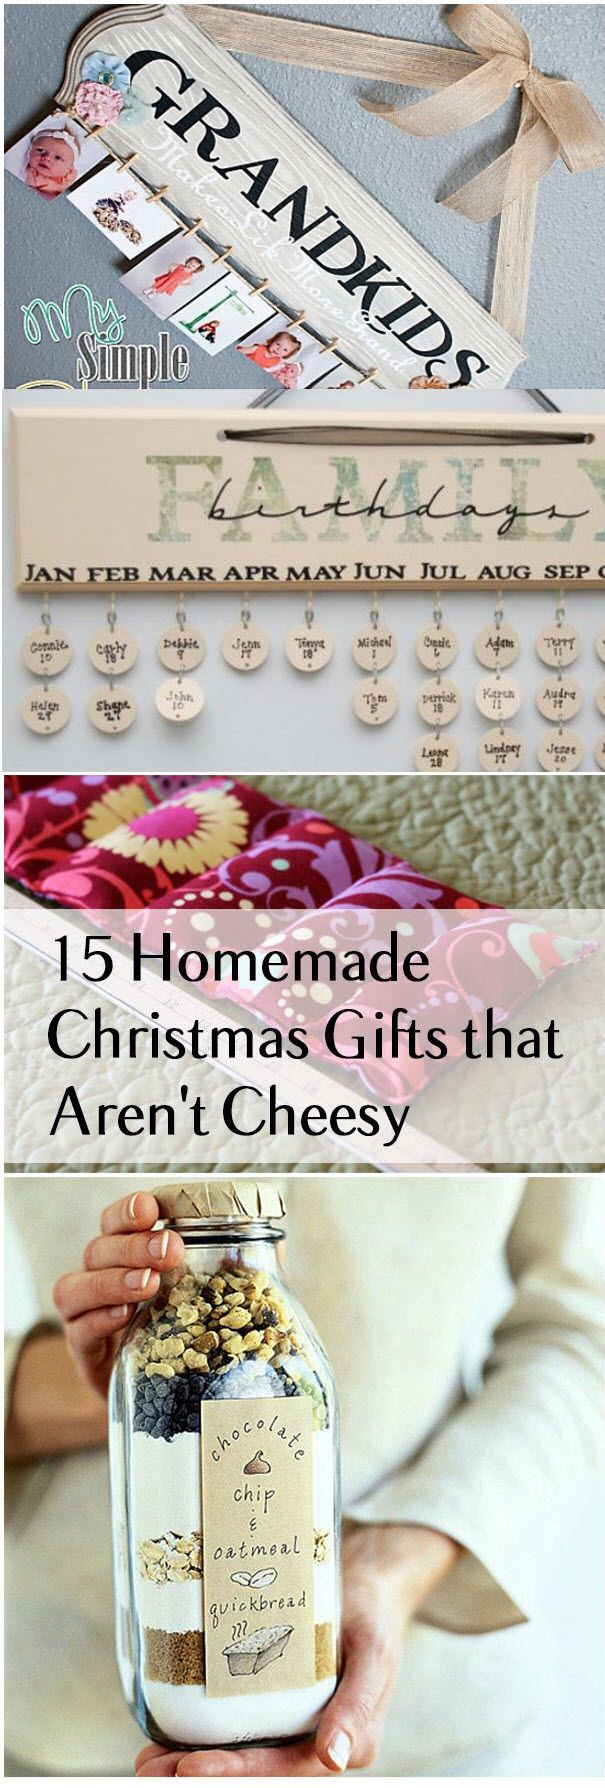 15 homemade christmas gifts that arent cheesy homemade christmas 15 homemade christmas gifts that arent cheesy more solutioingenieria Choice Image